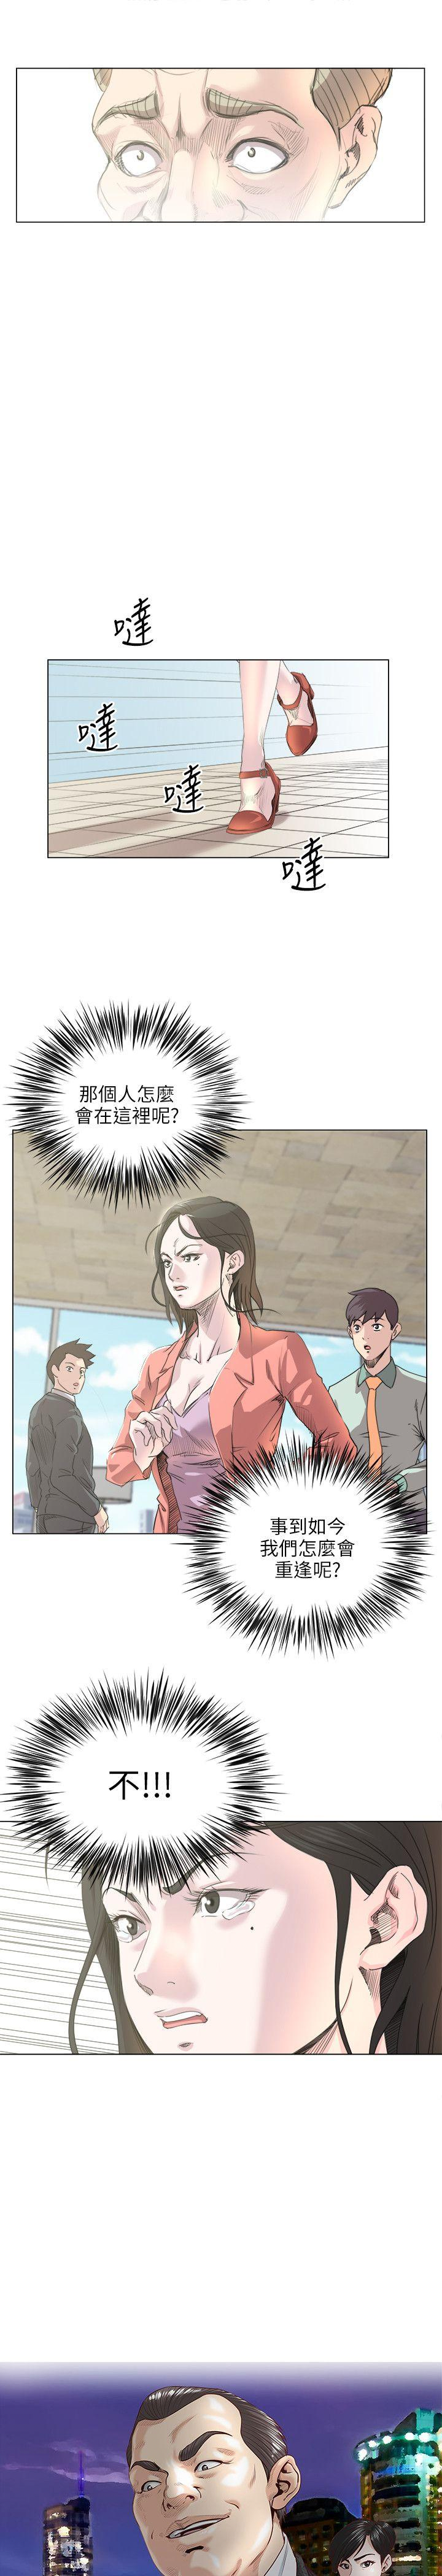 OFFICE TROUBLE 326